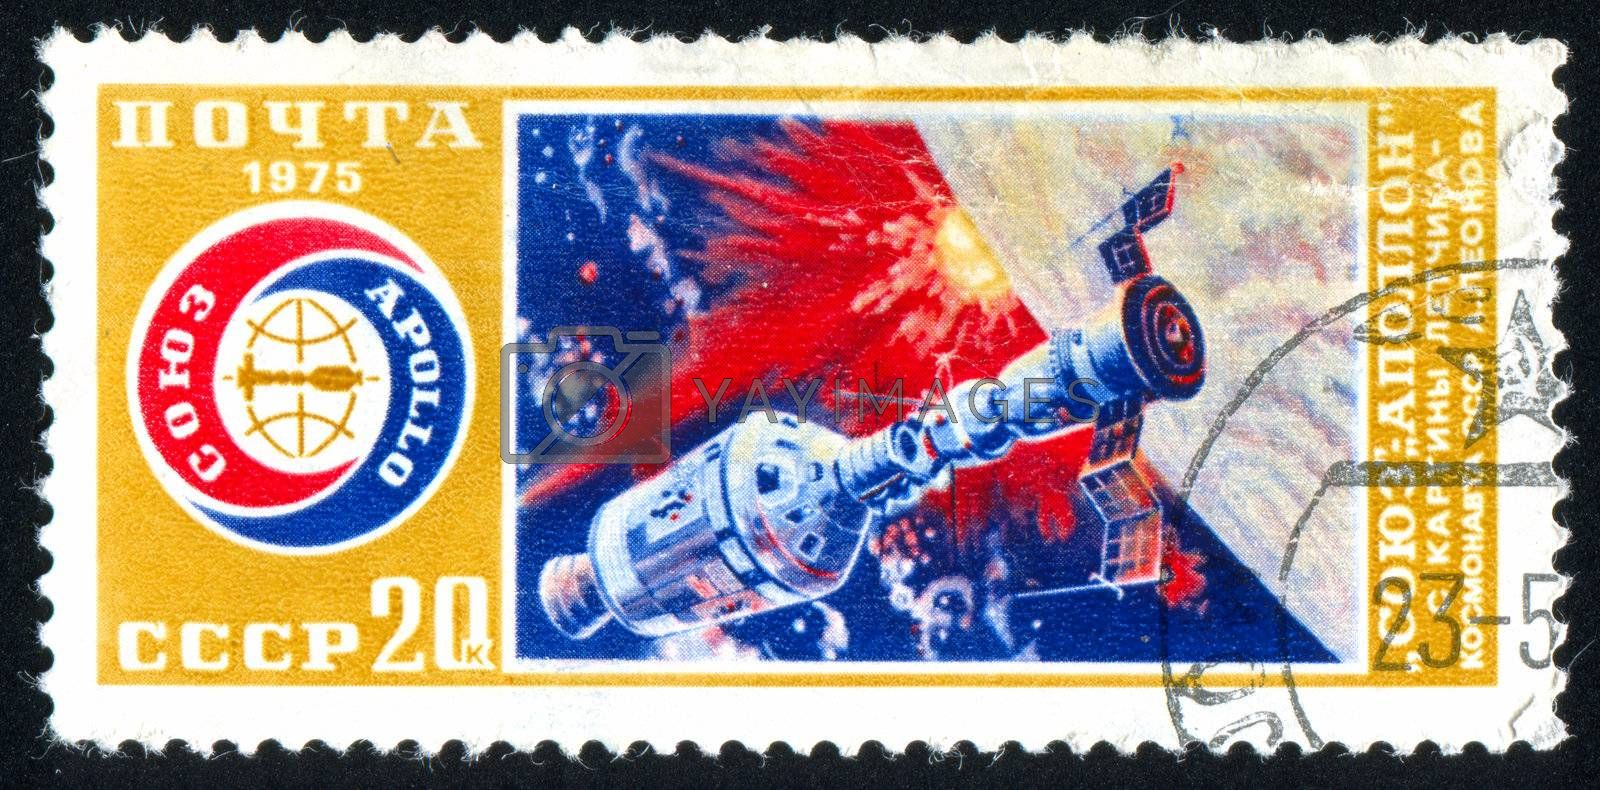 RUSSIA - CIRCA 1975: stamp printed by Russia, shows space satellite, circa 1975.